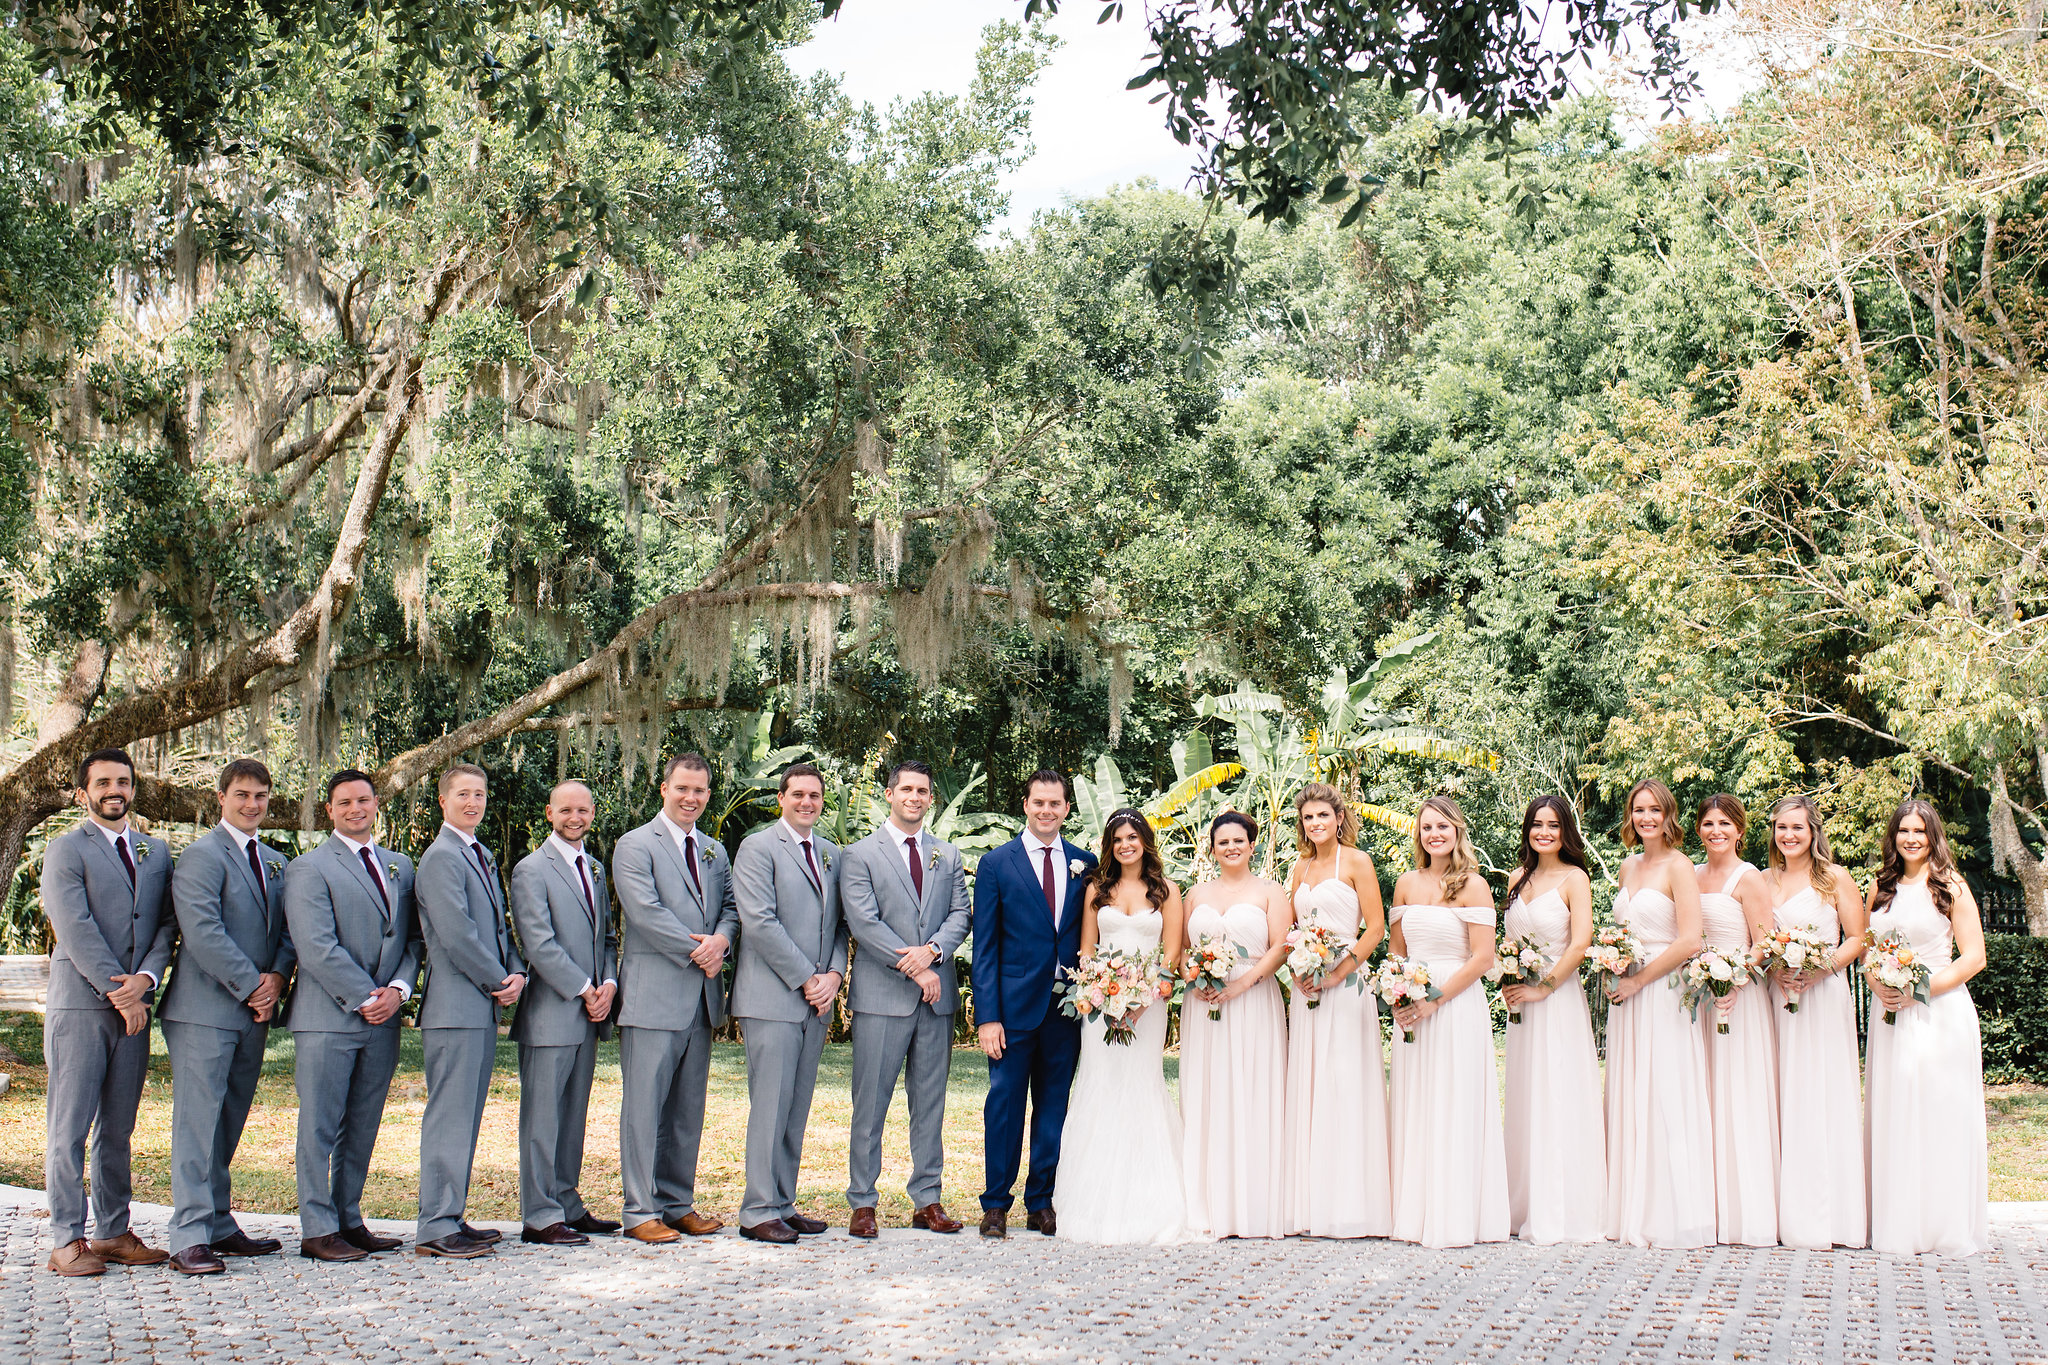 Grey and Navy Blue Suits and Blush Bridesmaids Dresses  Blush & White Garden wedding at Luxmore Grande Estate in Orlando, Florida  Orlando Wedding Planner Blue Ribbon Weddings  Orlando Wedding Photographer JP Pratt Photography  Wedding Ceremony & Reception at Luxmore Grande Estate